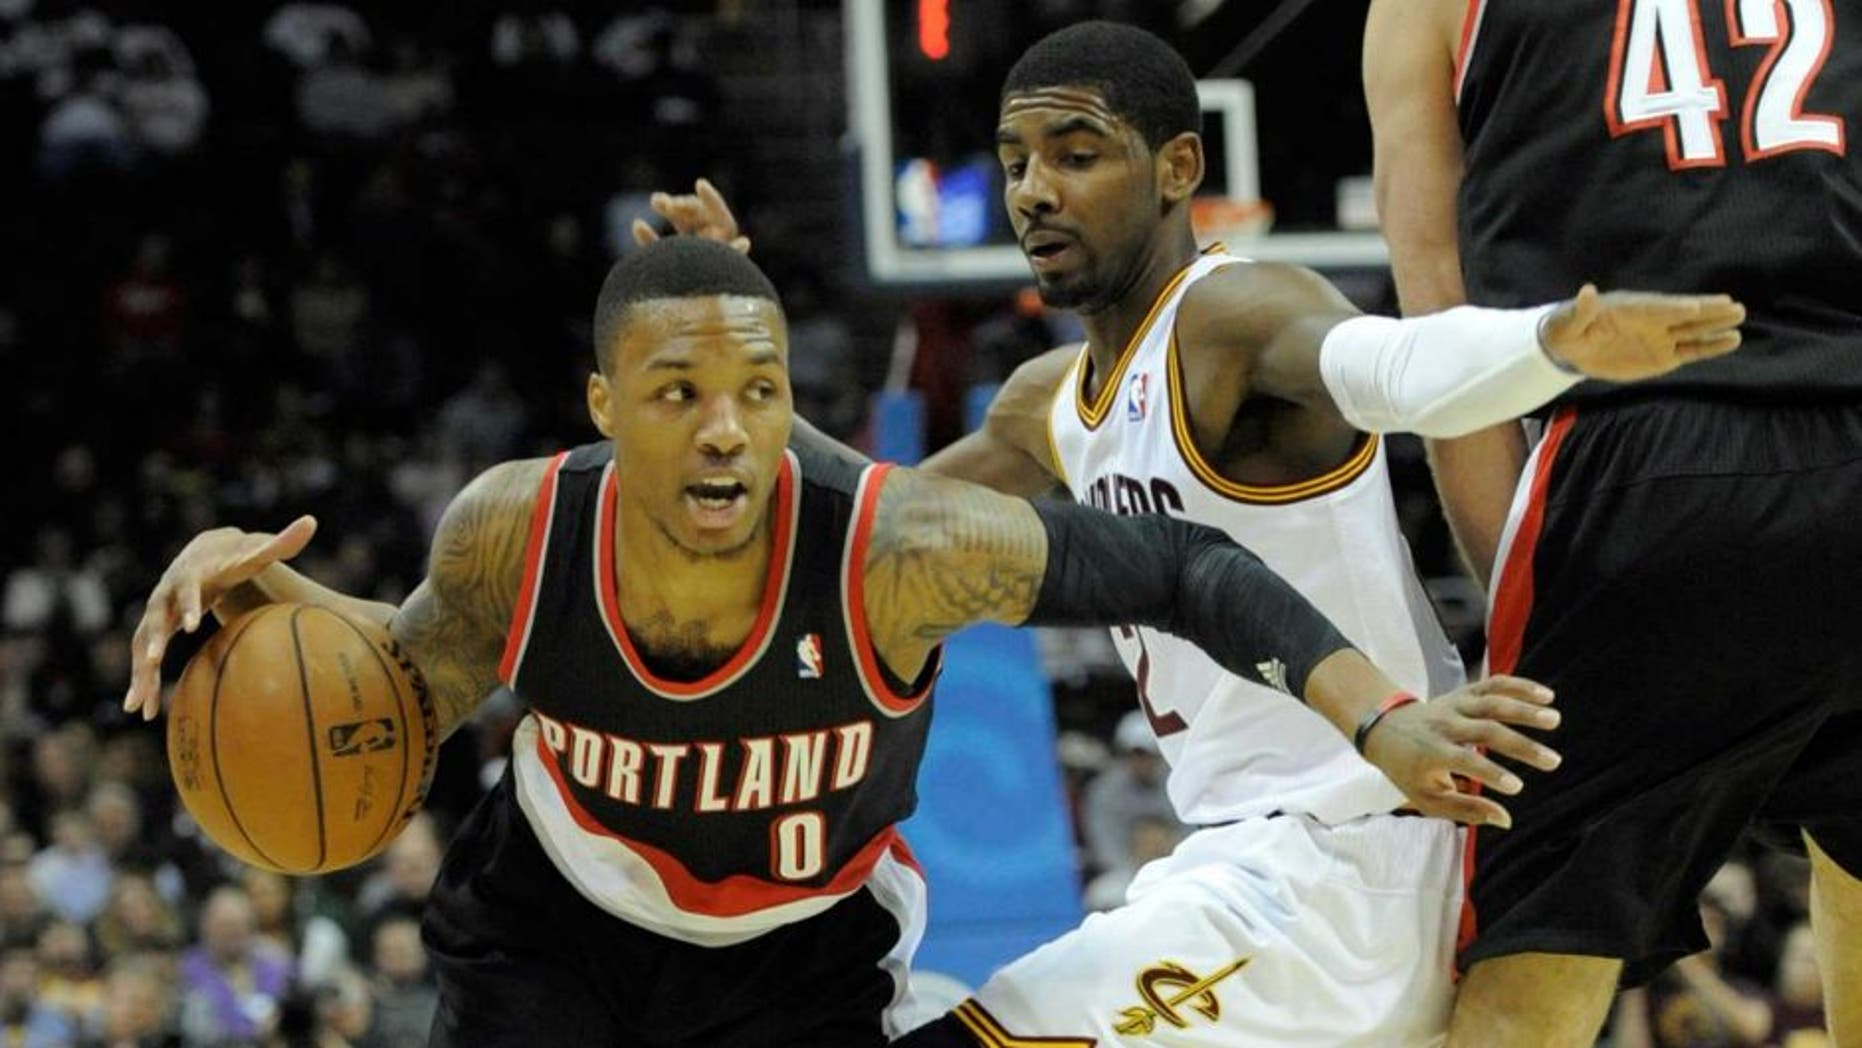 Dec 17, 2013; Cleveland, OH, USA; Cleveland Cavaliers point guard Kyrie Irving (center) works against Portland Trail Blazers point guard Damian Lillard (0) and center Robin Lopez (42) in the first quarter at Quicken Loans Arena. Mandatory Credit: David Richard-USA TODAY Sports